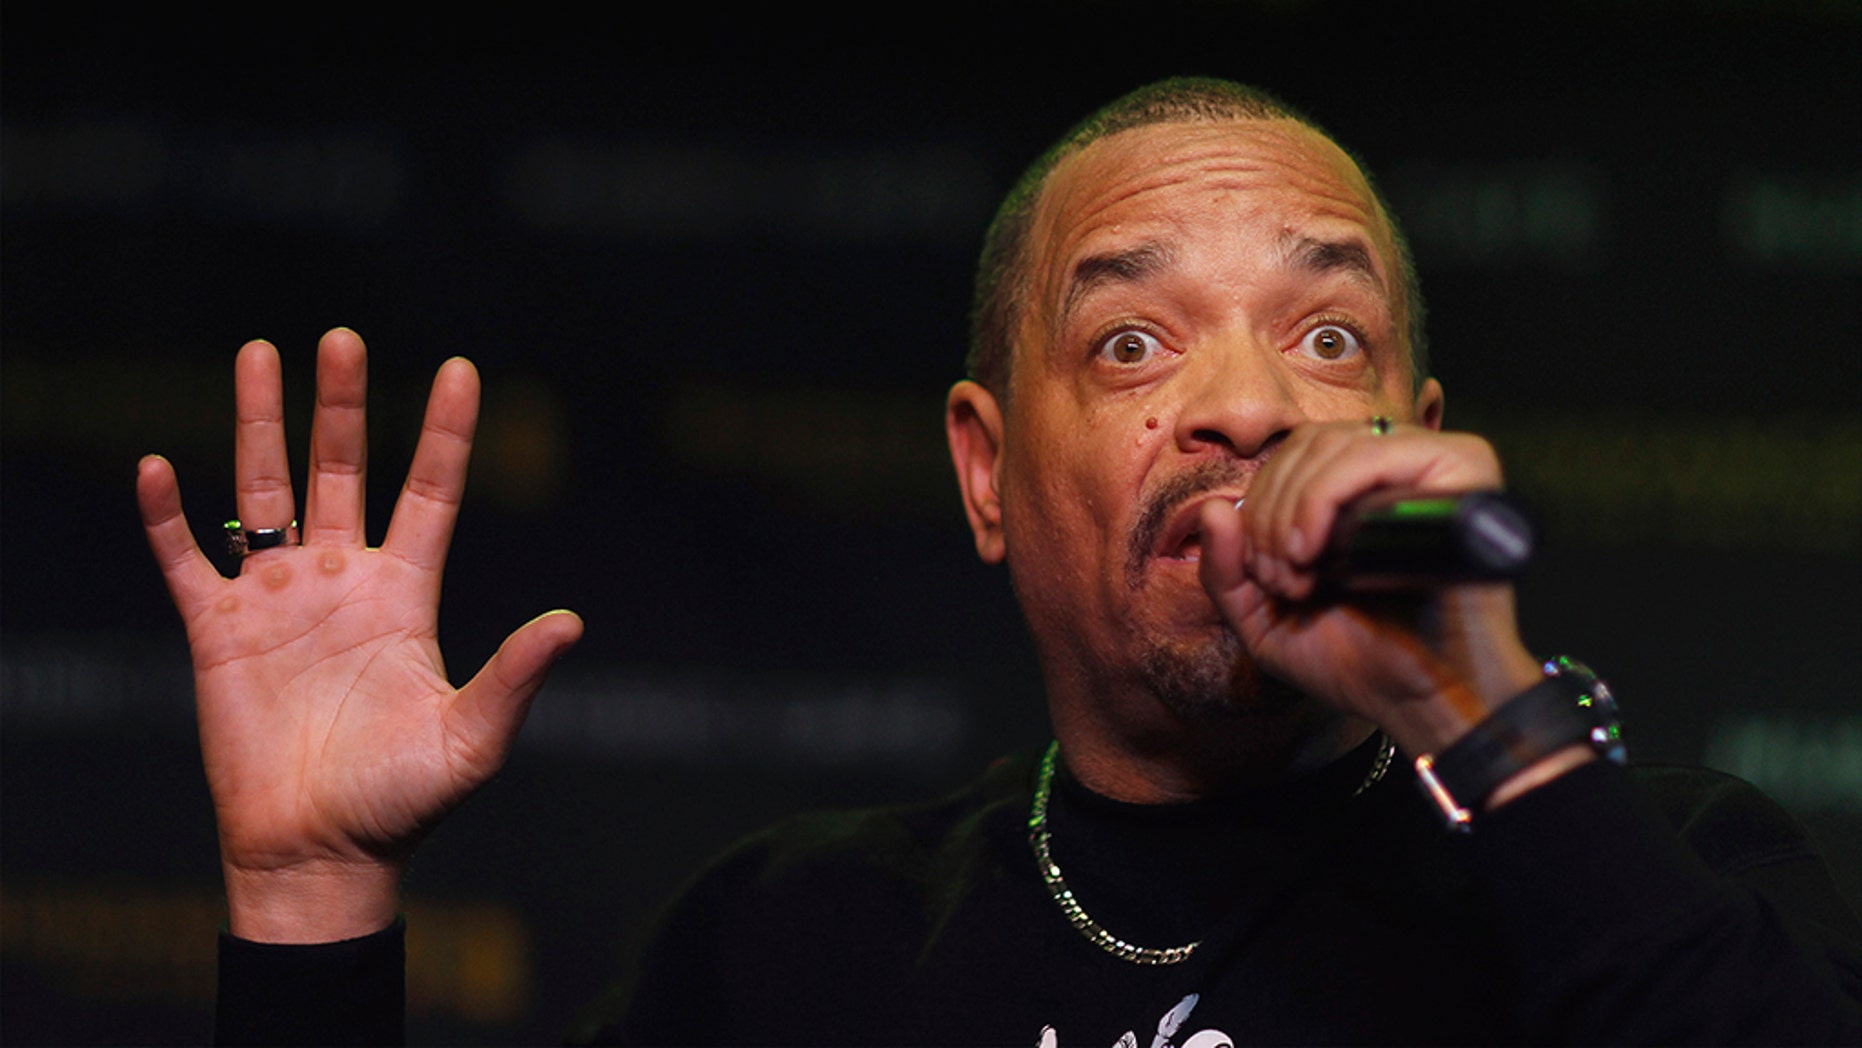 Ice-T, pictured here in 2012, was arrested on Wednesday in New York City for evading a toll bridge.